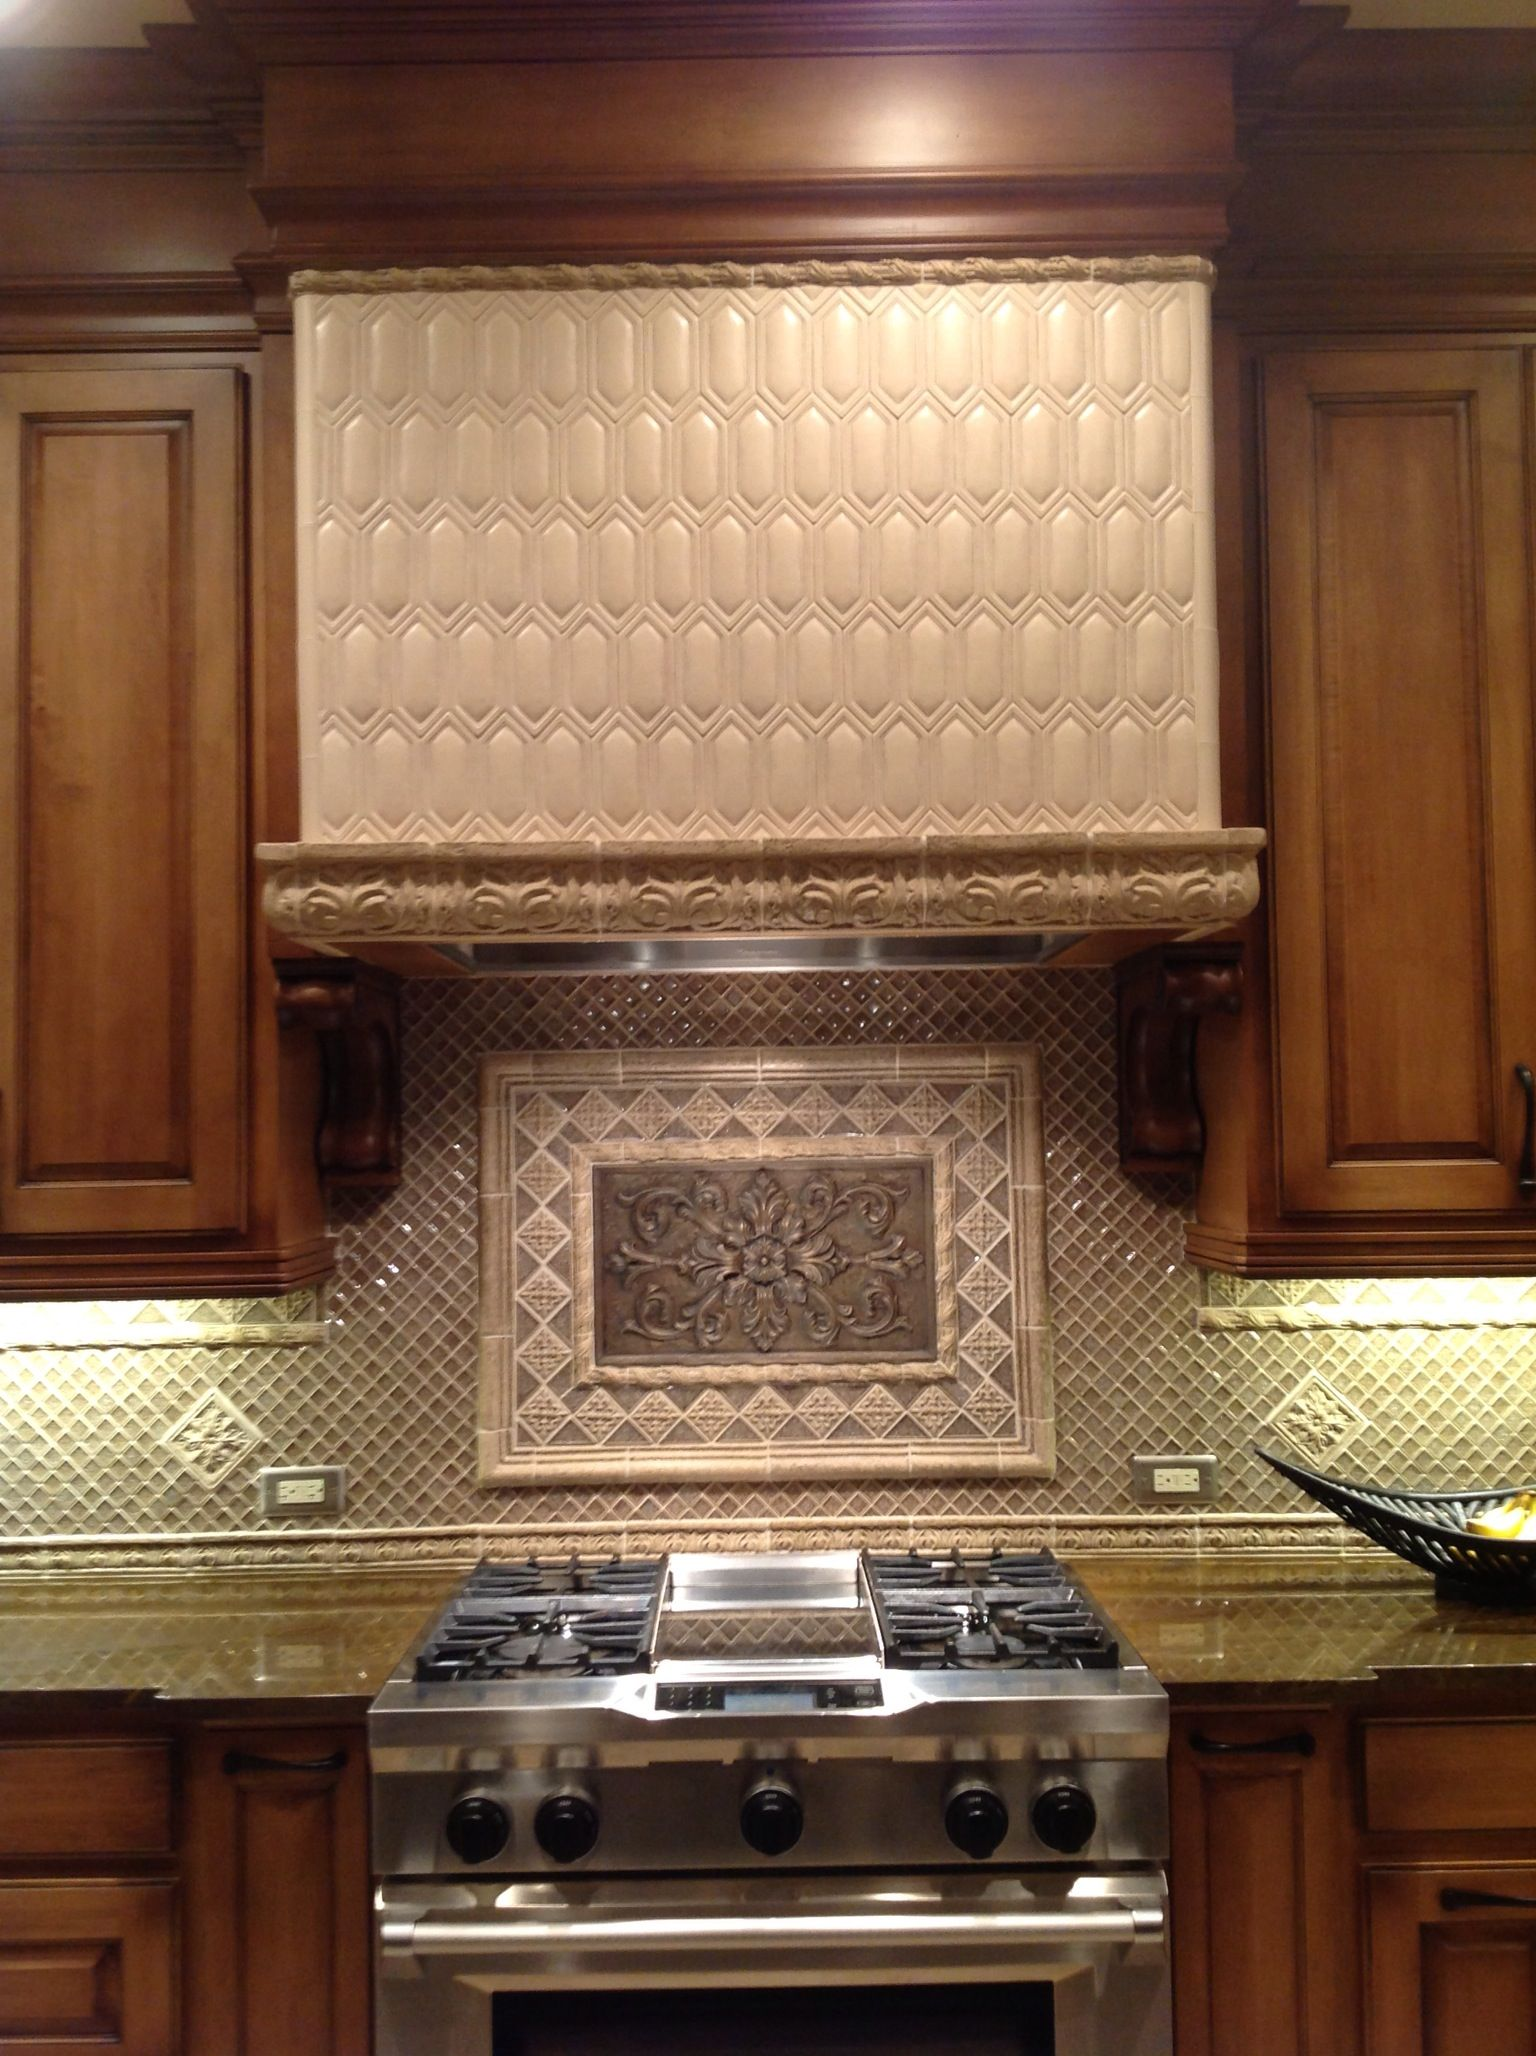 Contemporary Kitchen Backsplash With Sonoma Tile Designed By Tukasa Creations